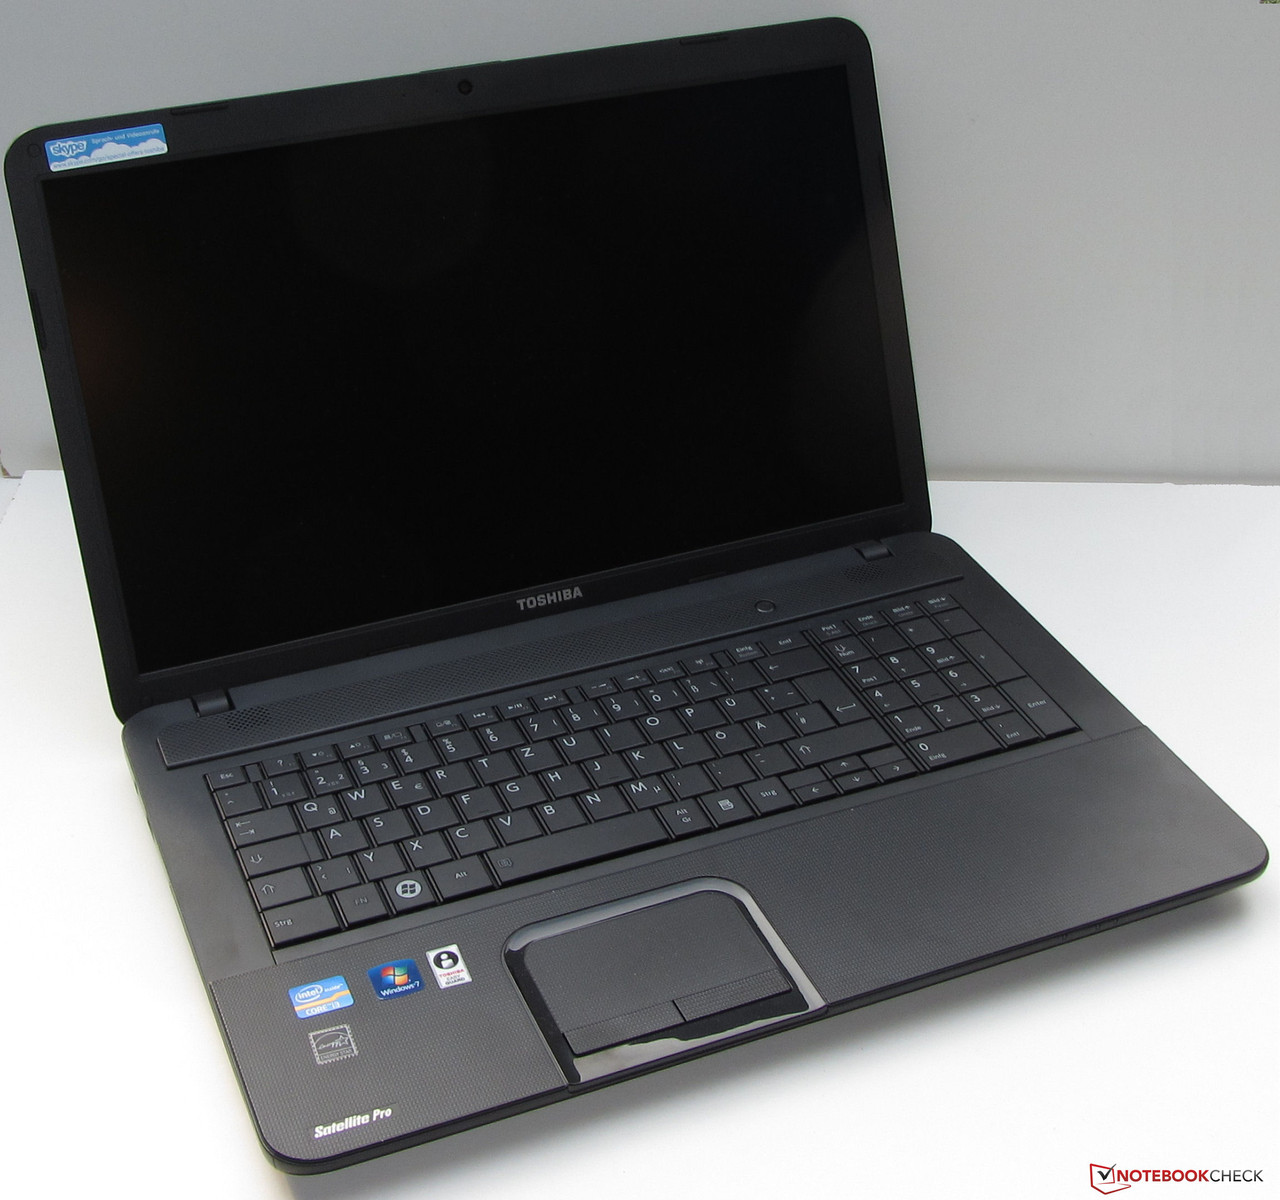 Review Toshiba Satellite Pro C870 Notebook Reviews G7 Wiring Diagram The Is Visually Modest And Sober